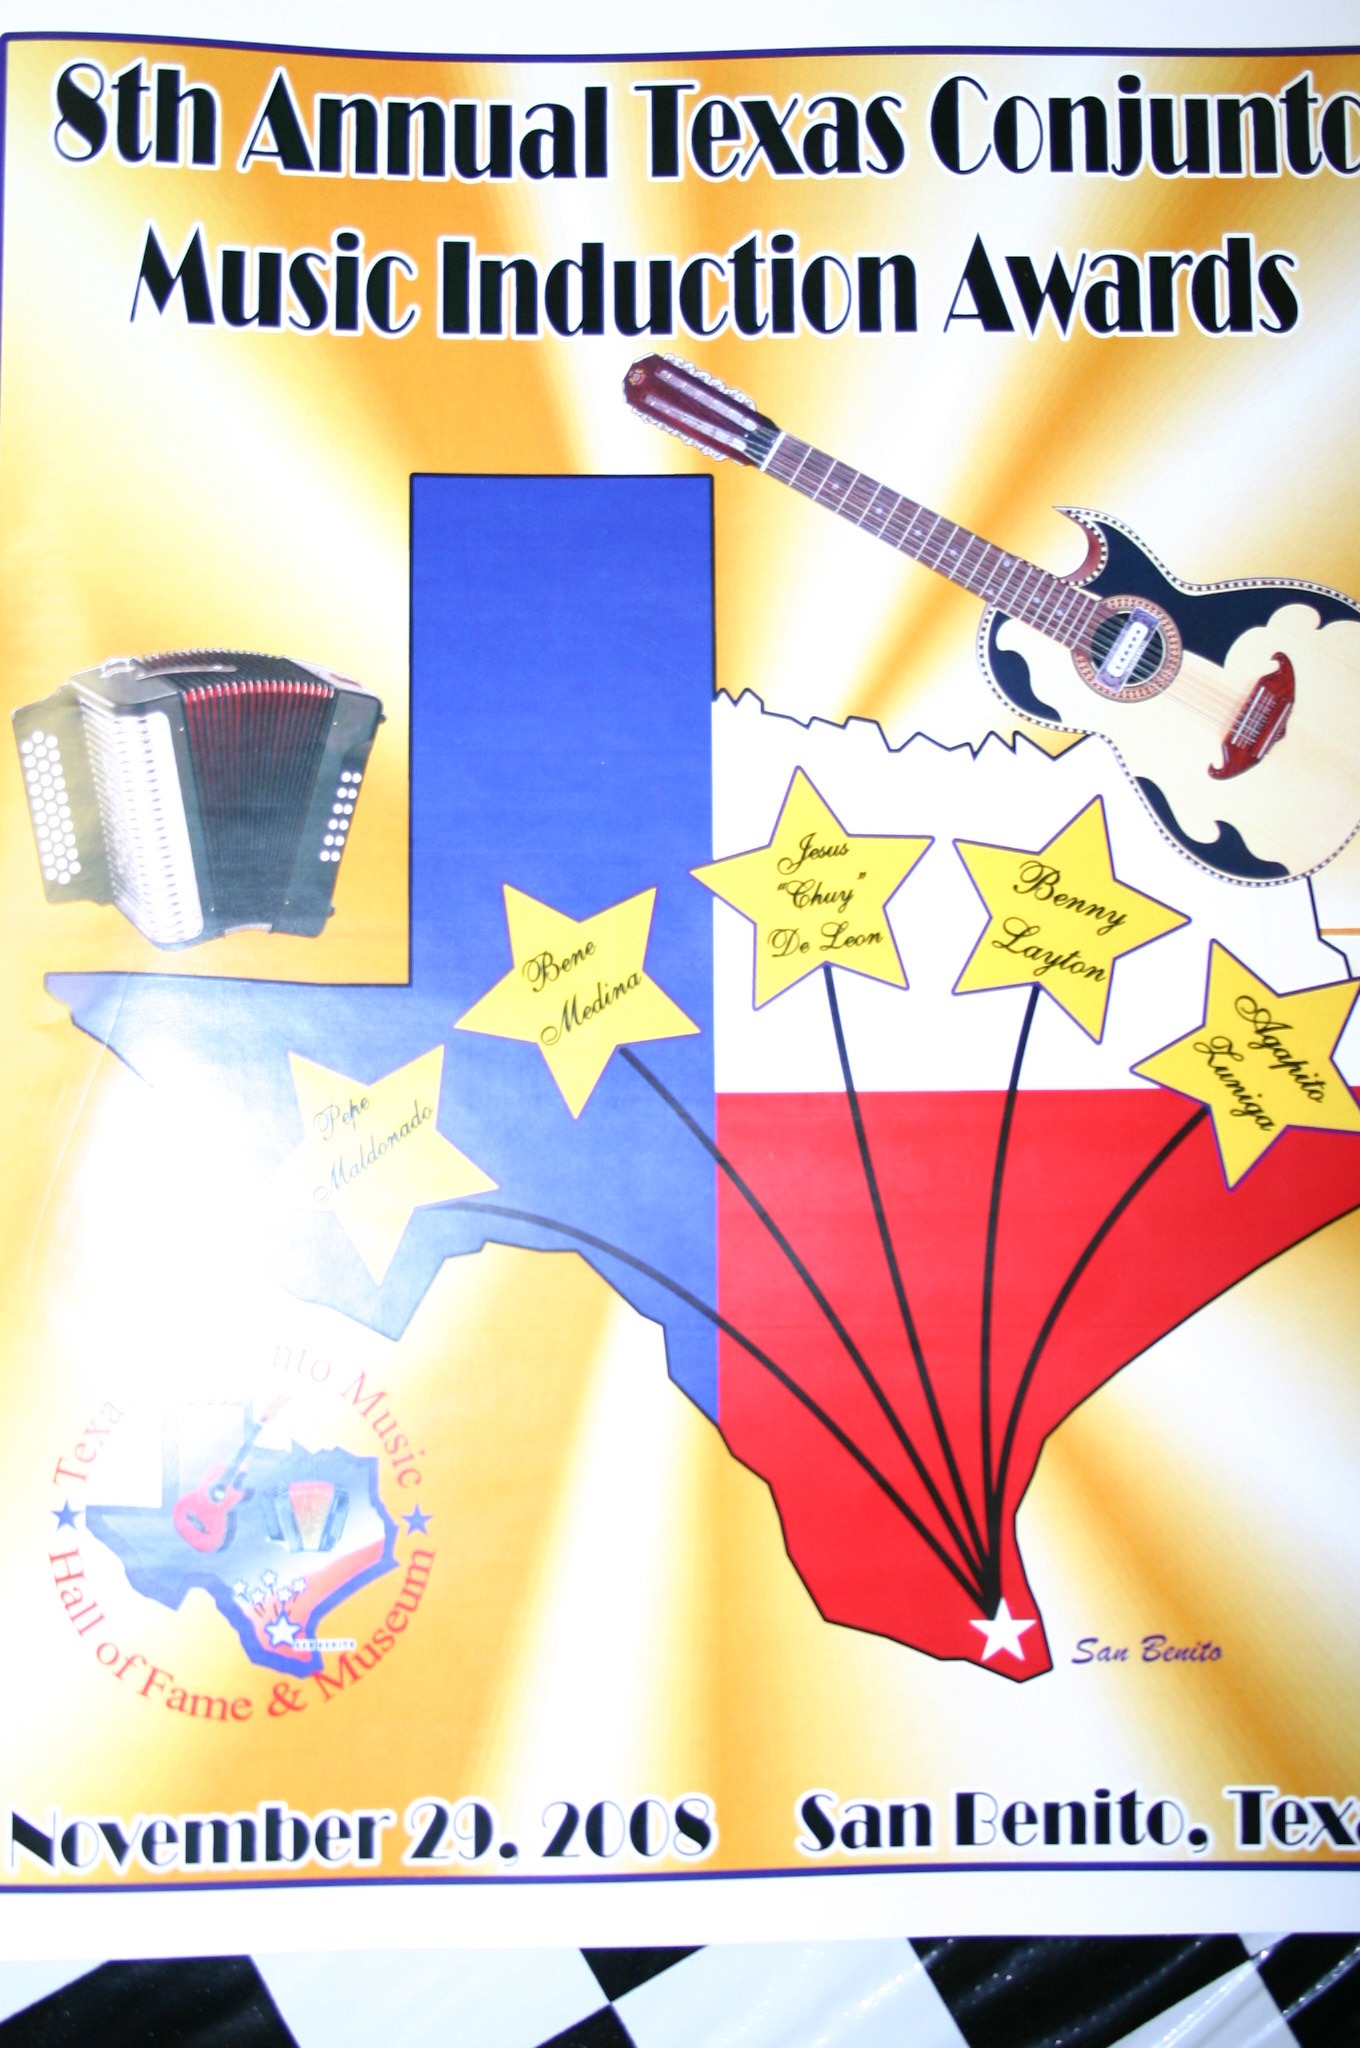 8th Annual Texas Conjunto Music Induction Awards